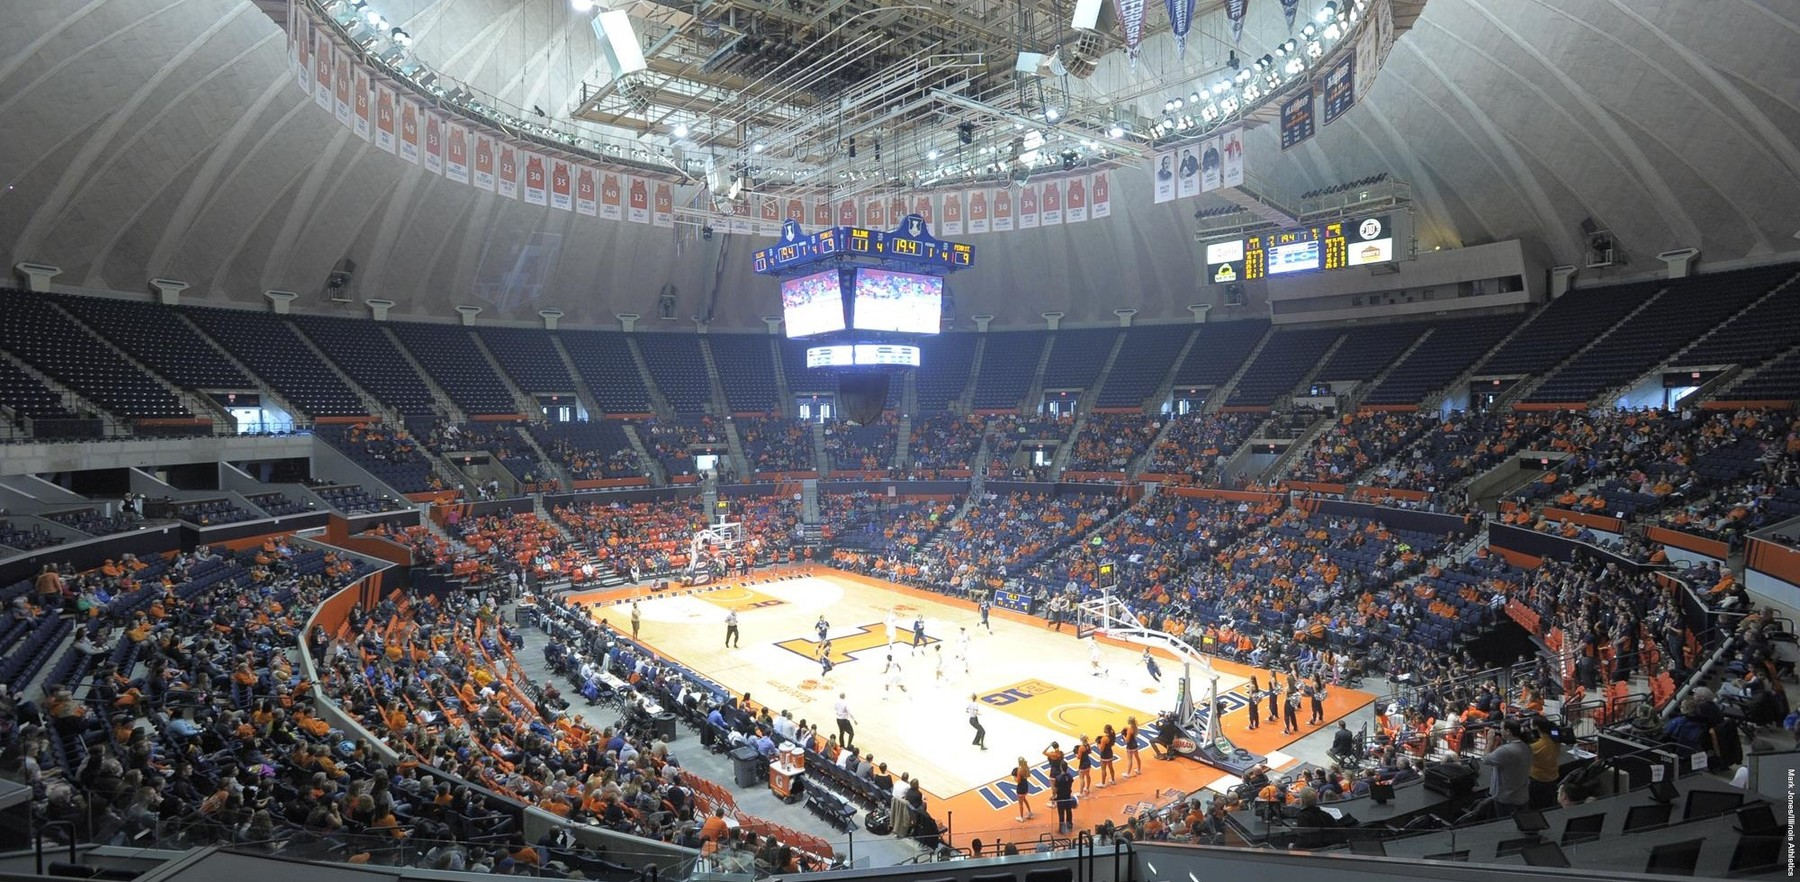 wide shot of the State Farm Center during a women's basketball game